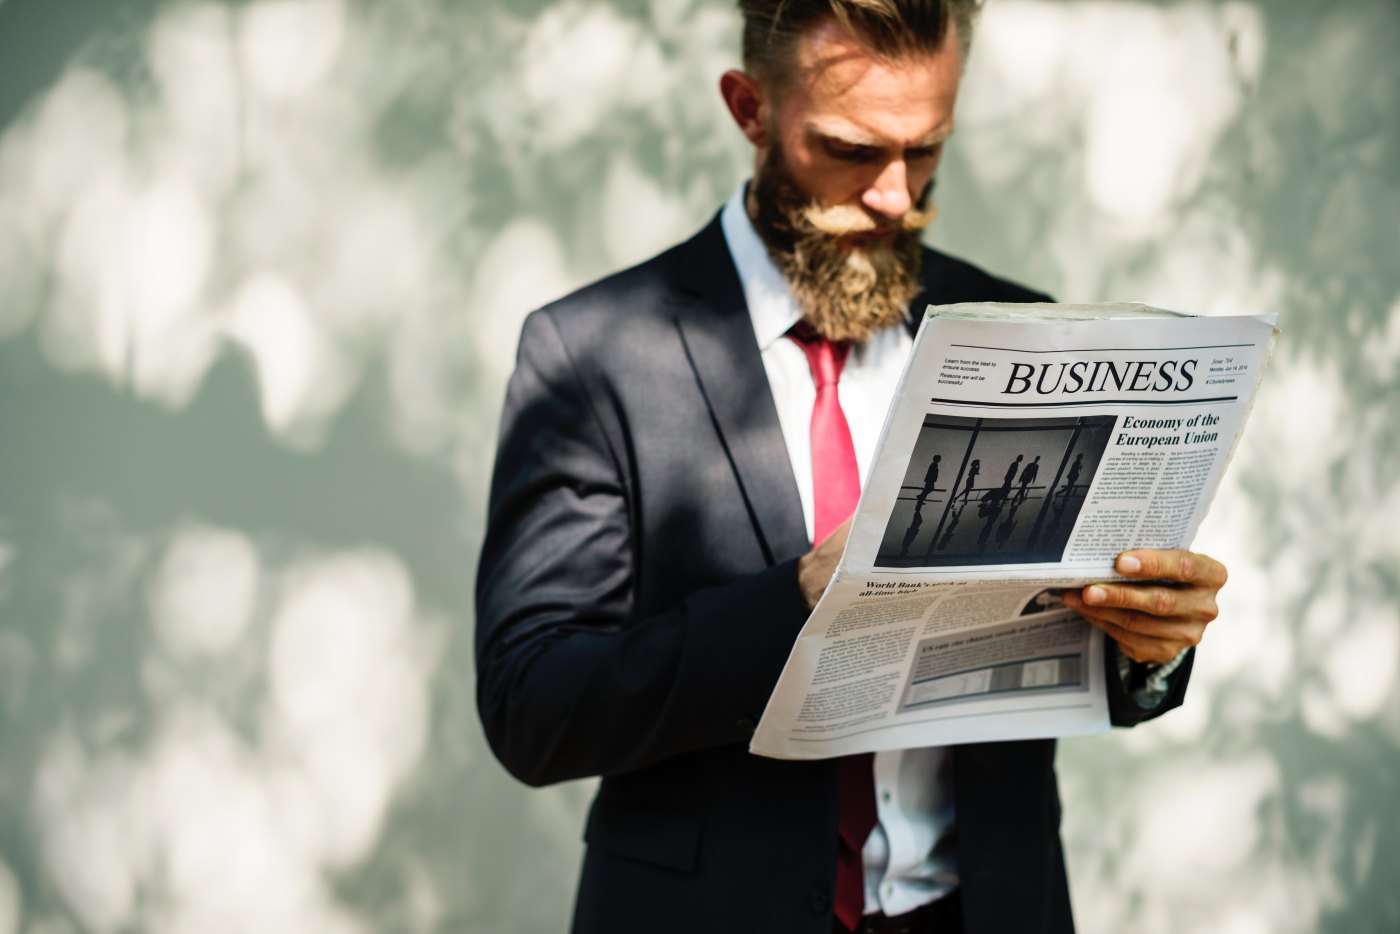 Amazsites.com - a man is reading business newspaper